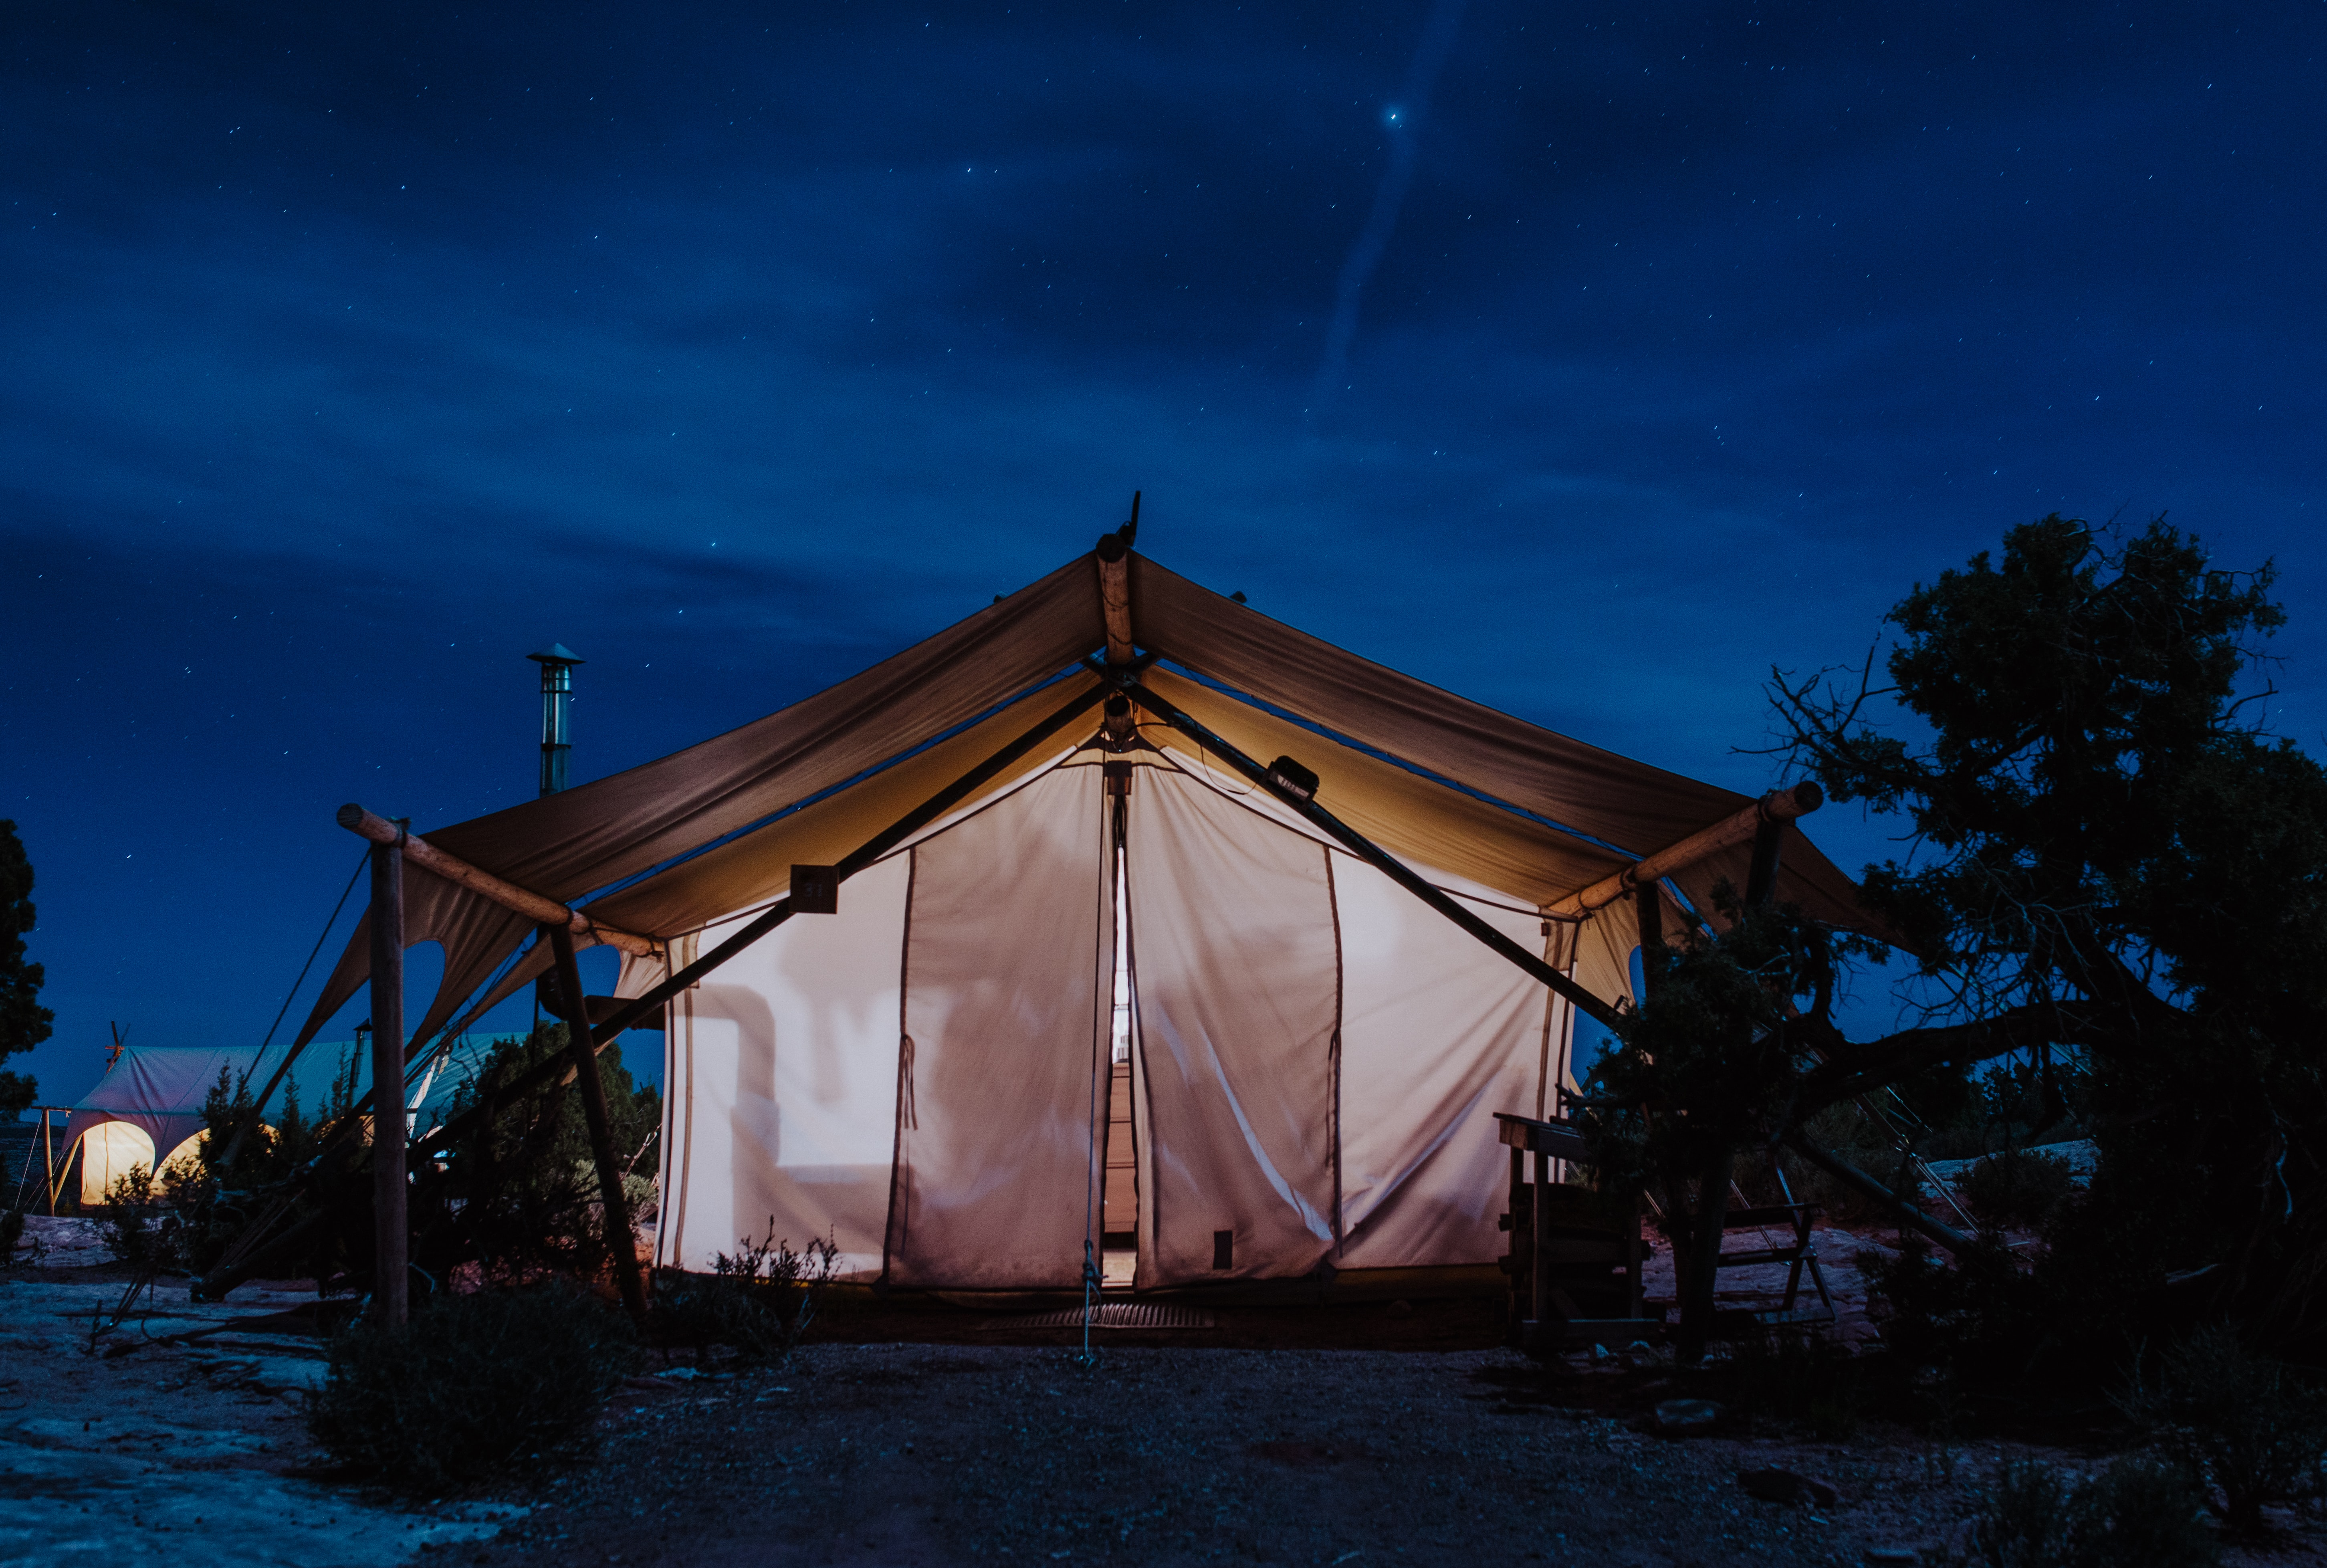 white tent under clear sky during night time